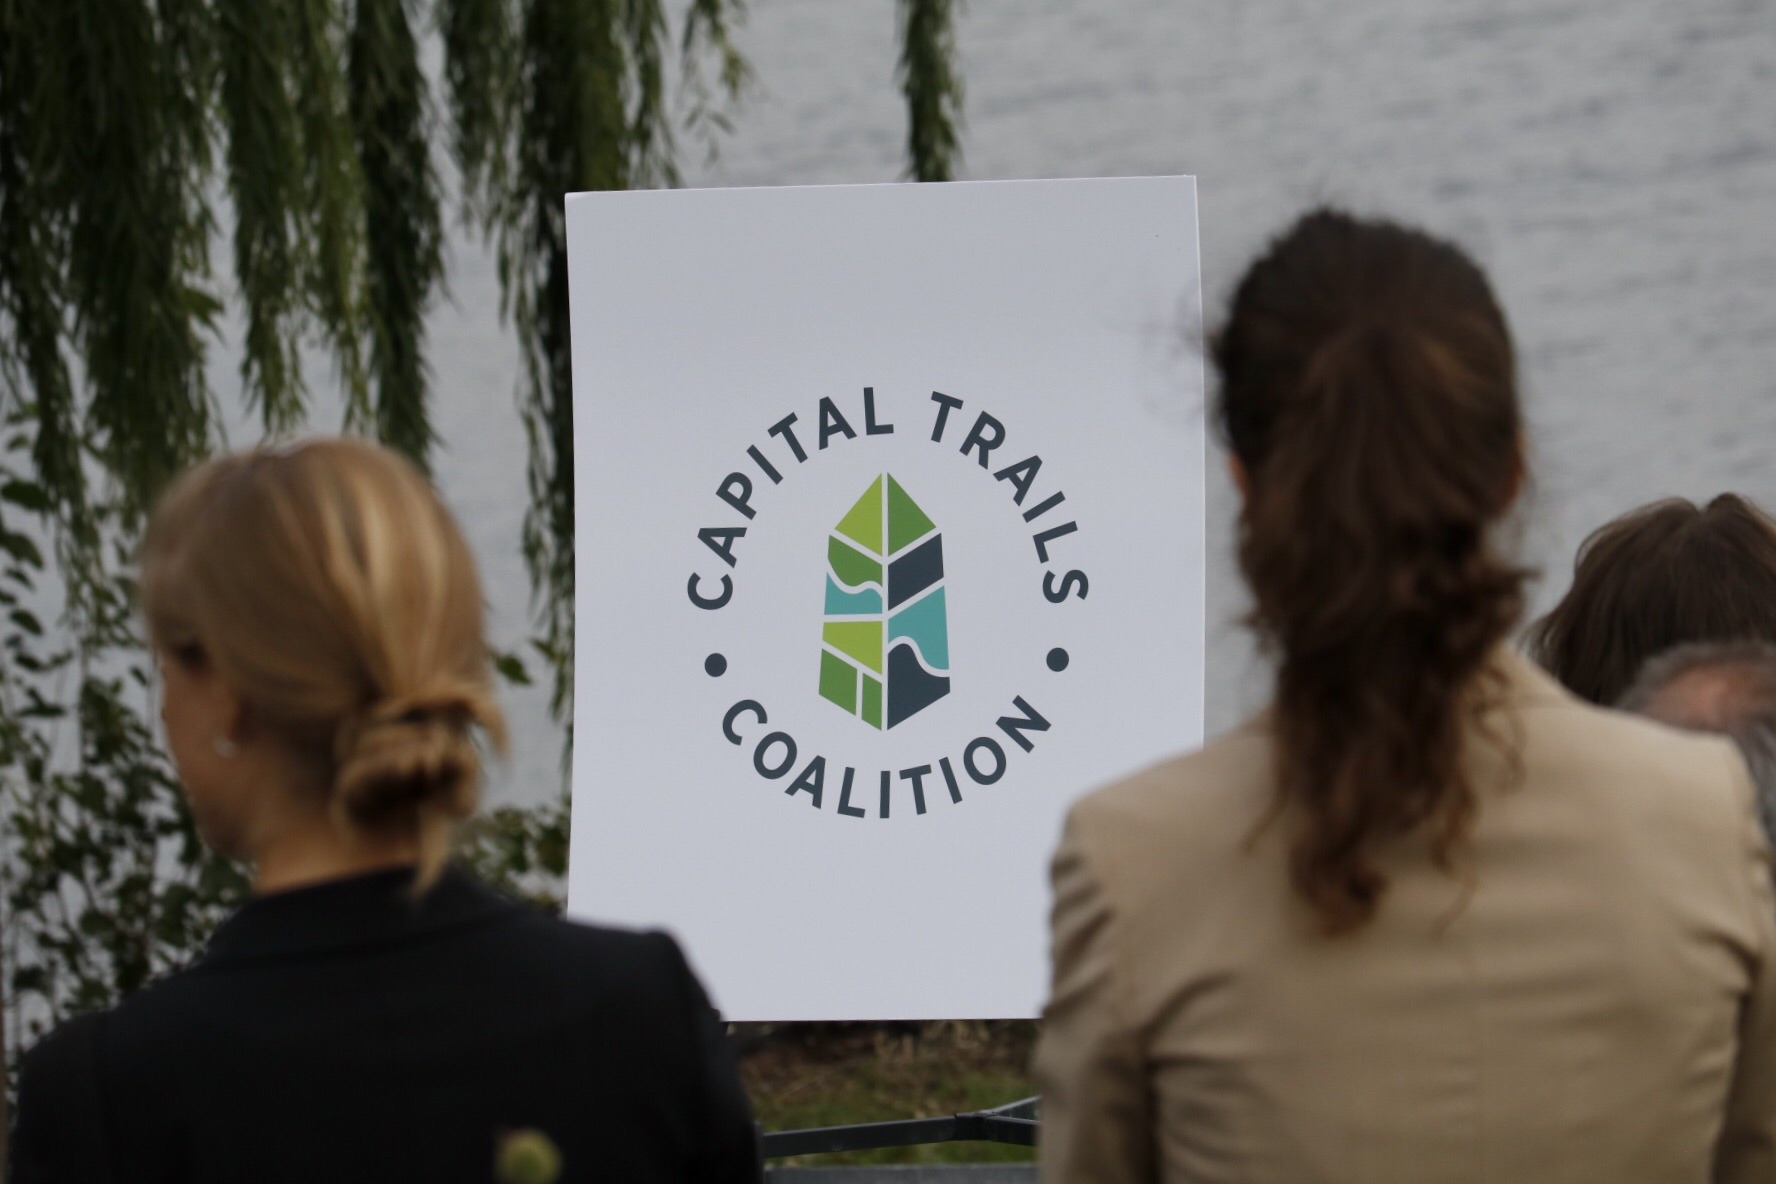 Along the MVT for the Capital Trails Coalition announcement